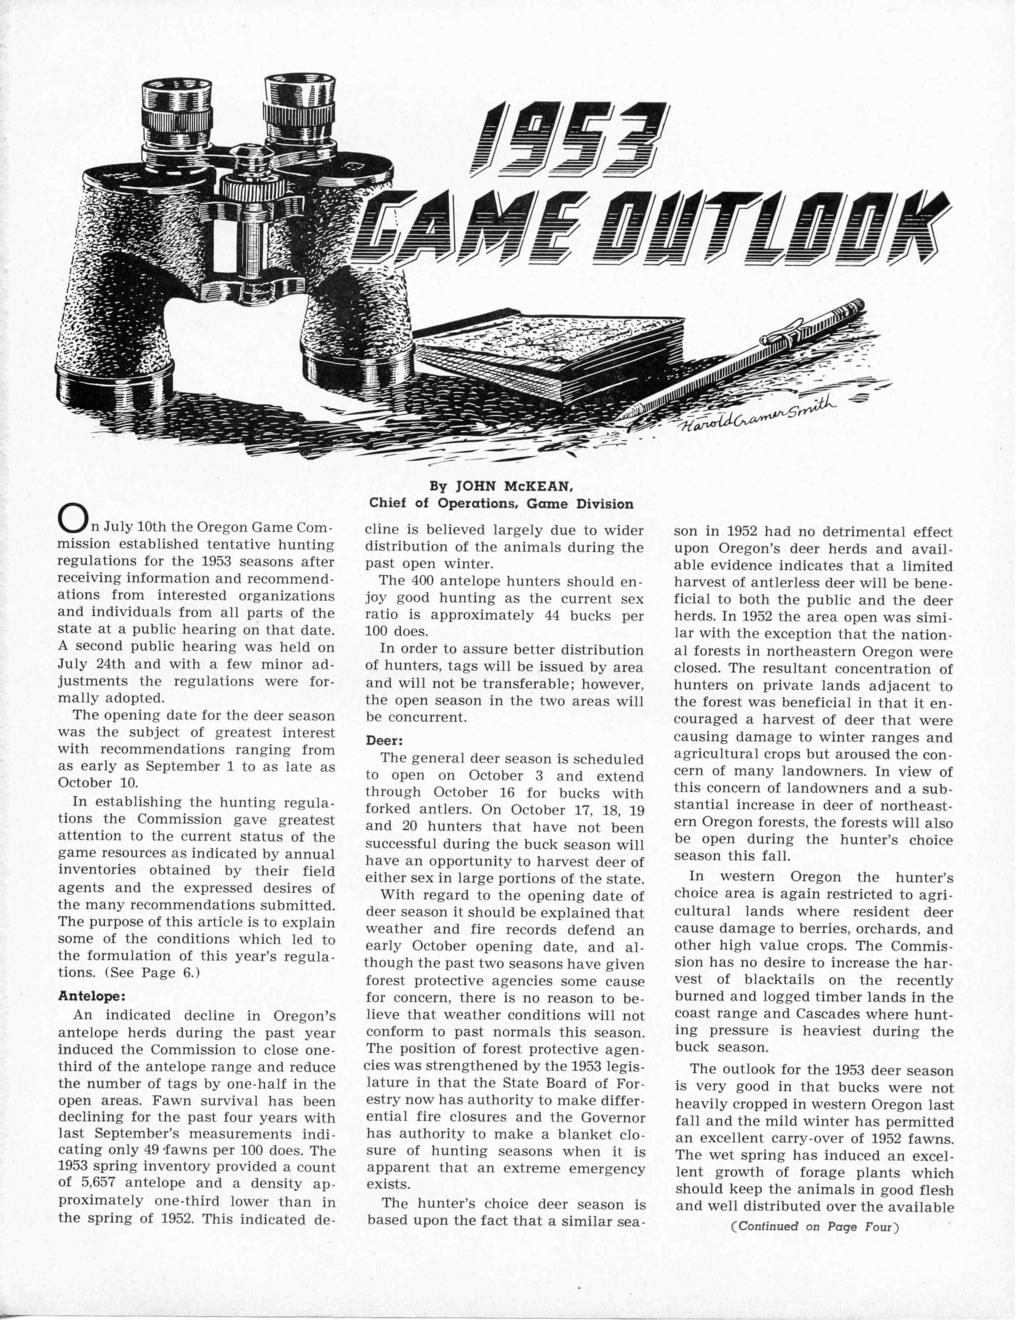 On July 10th the Oregon Game Commission established tentative hunting regulations for the 1953 seasons after receiving information and recommendations from interested organizations and individuals